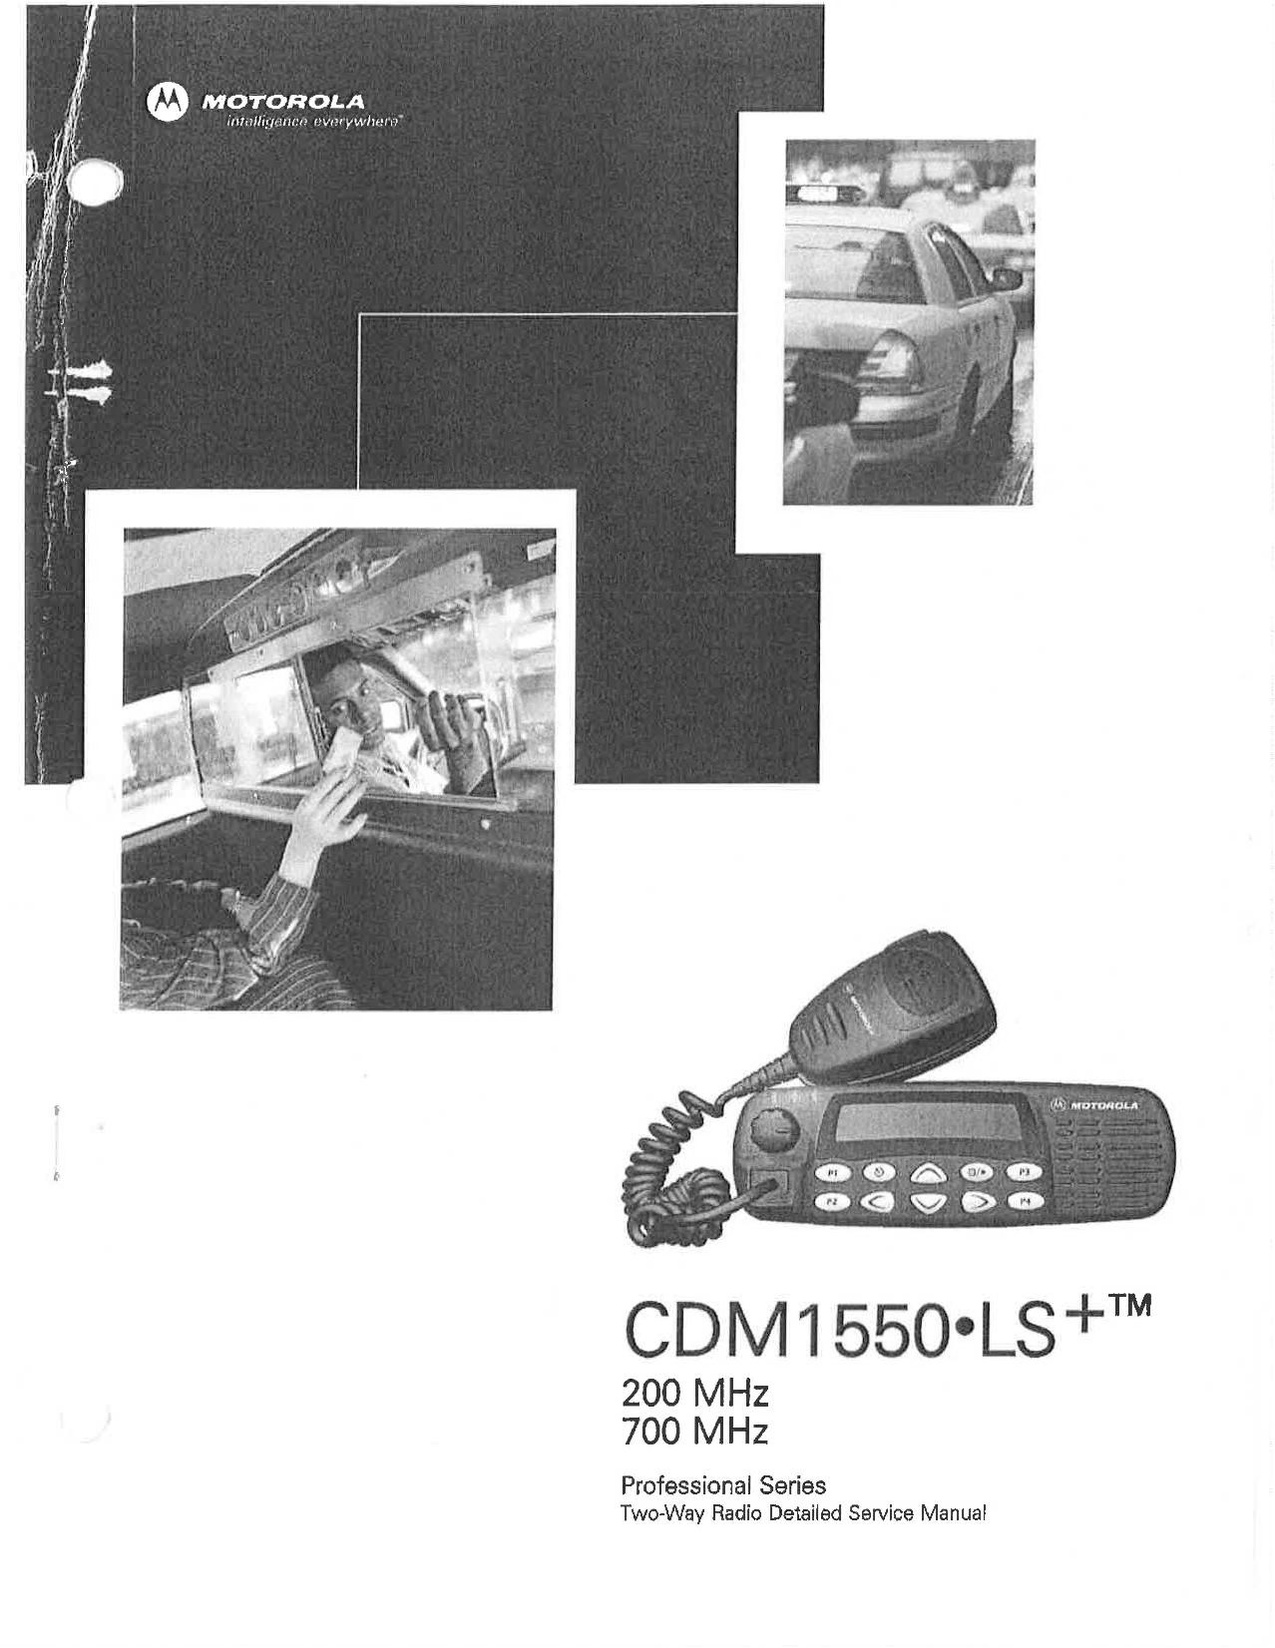 CDM1550 200-700 Mhz detailed service manual.pdf